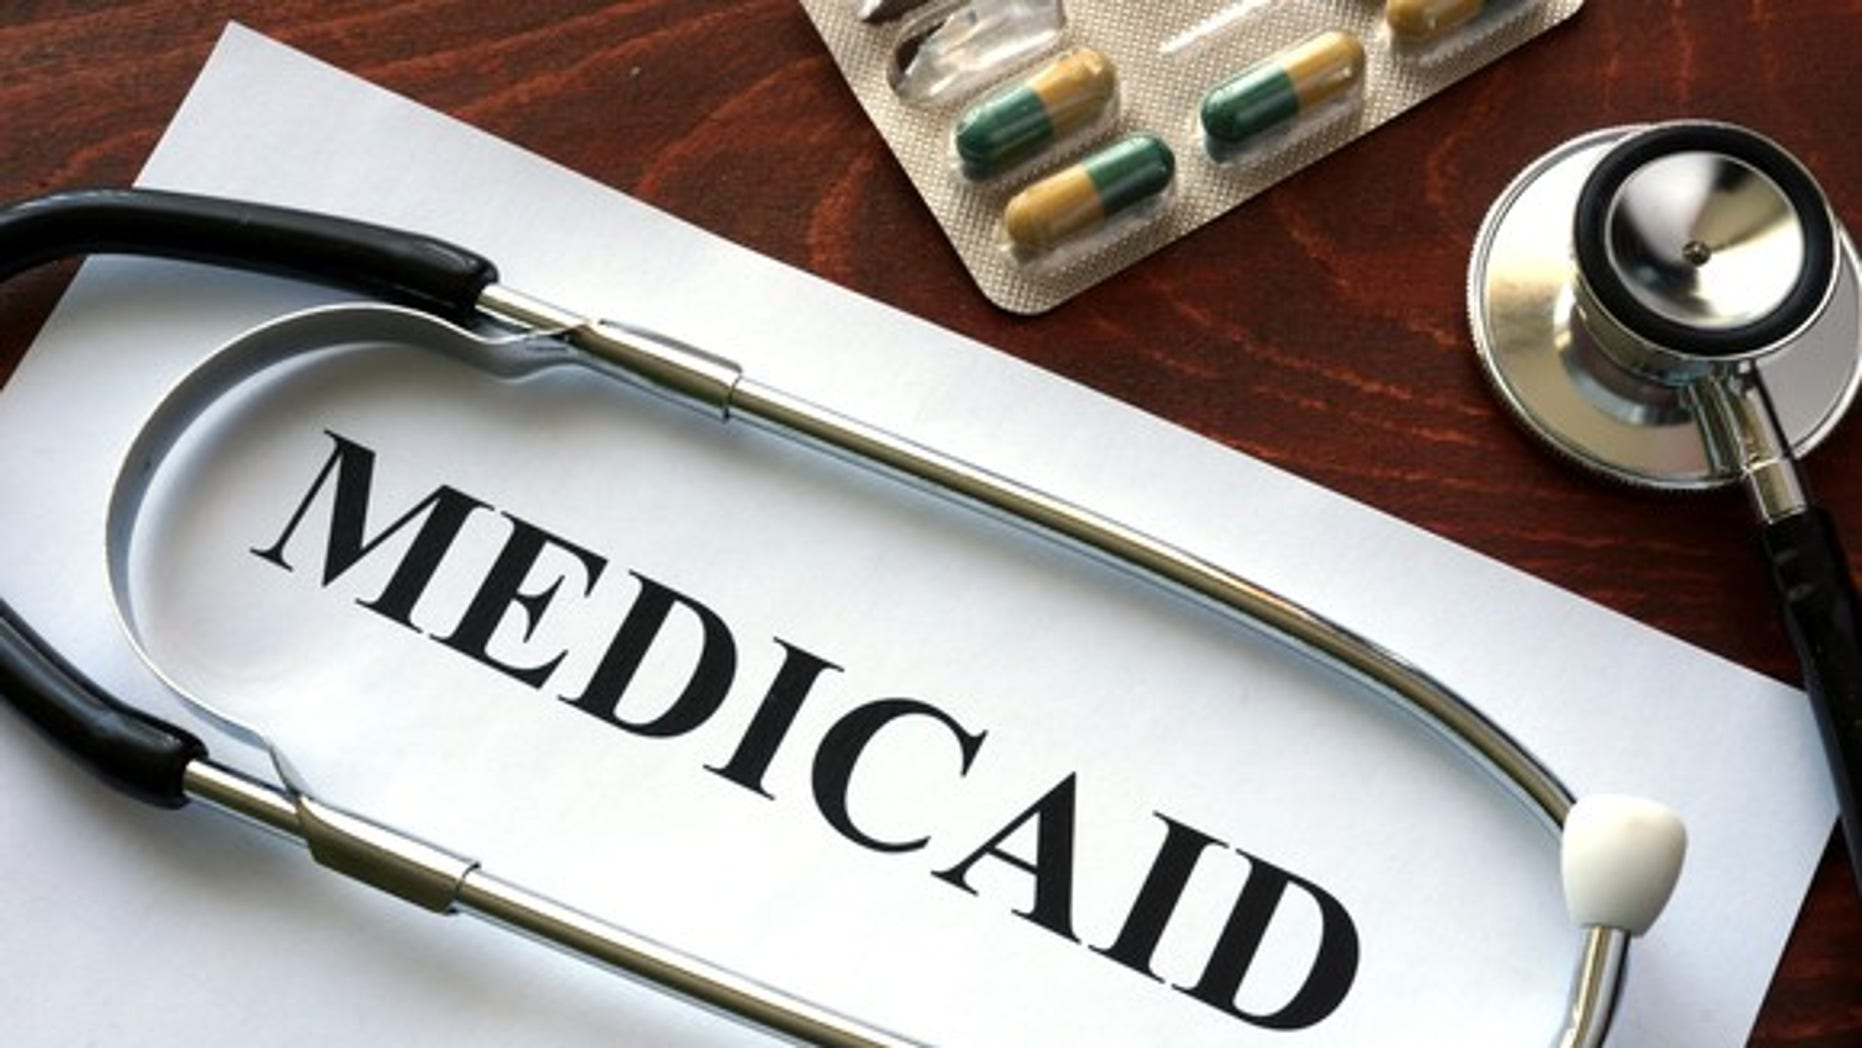 Federal judge vacates Medicaid work requirements in Arkansas and Kentucky